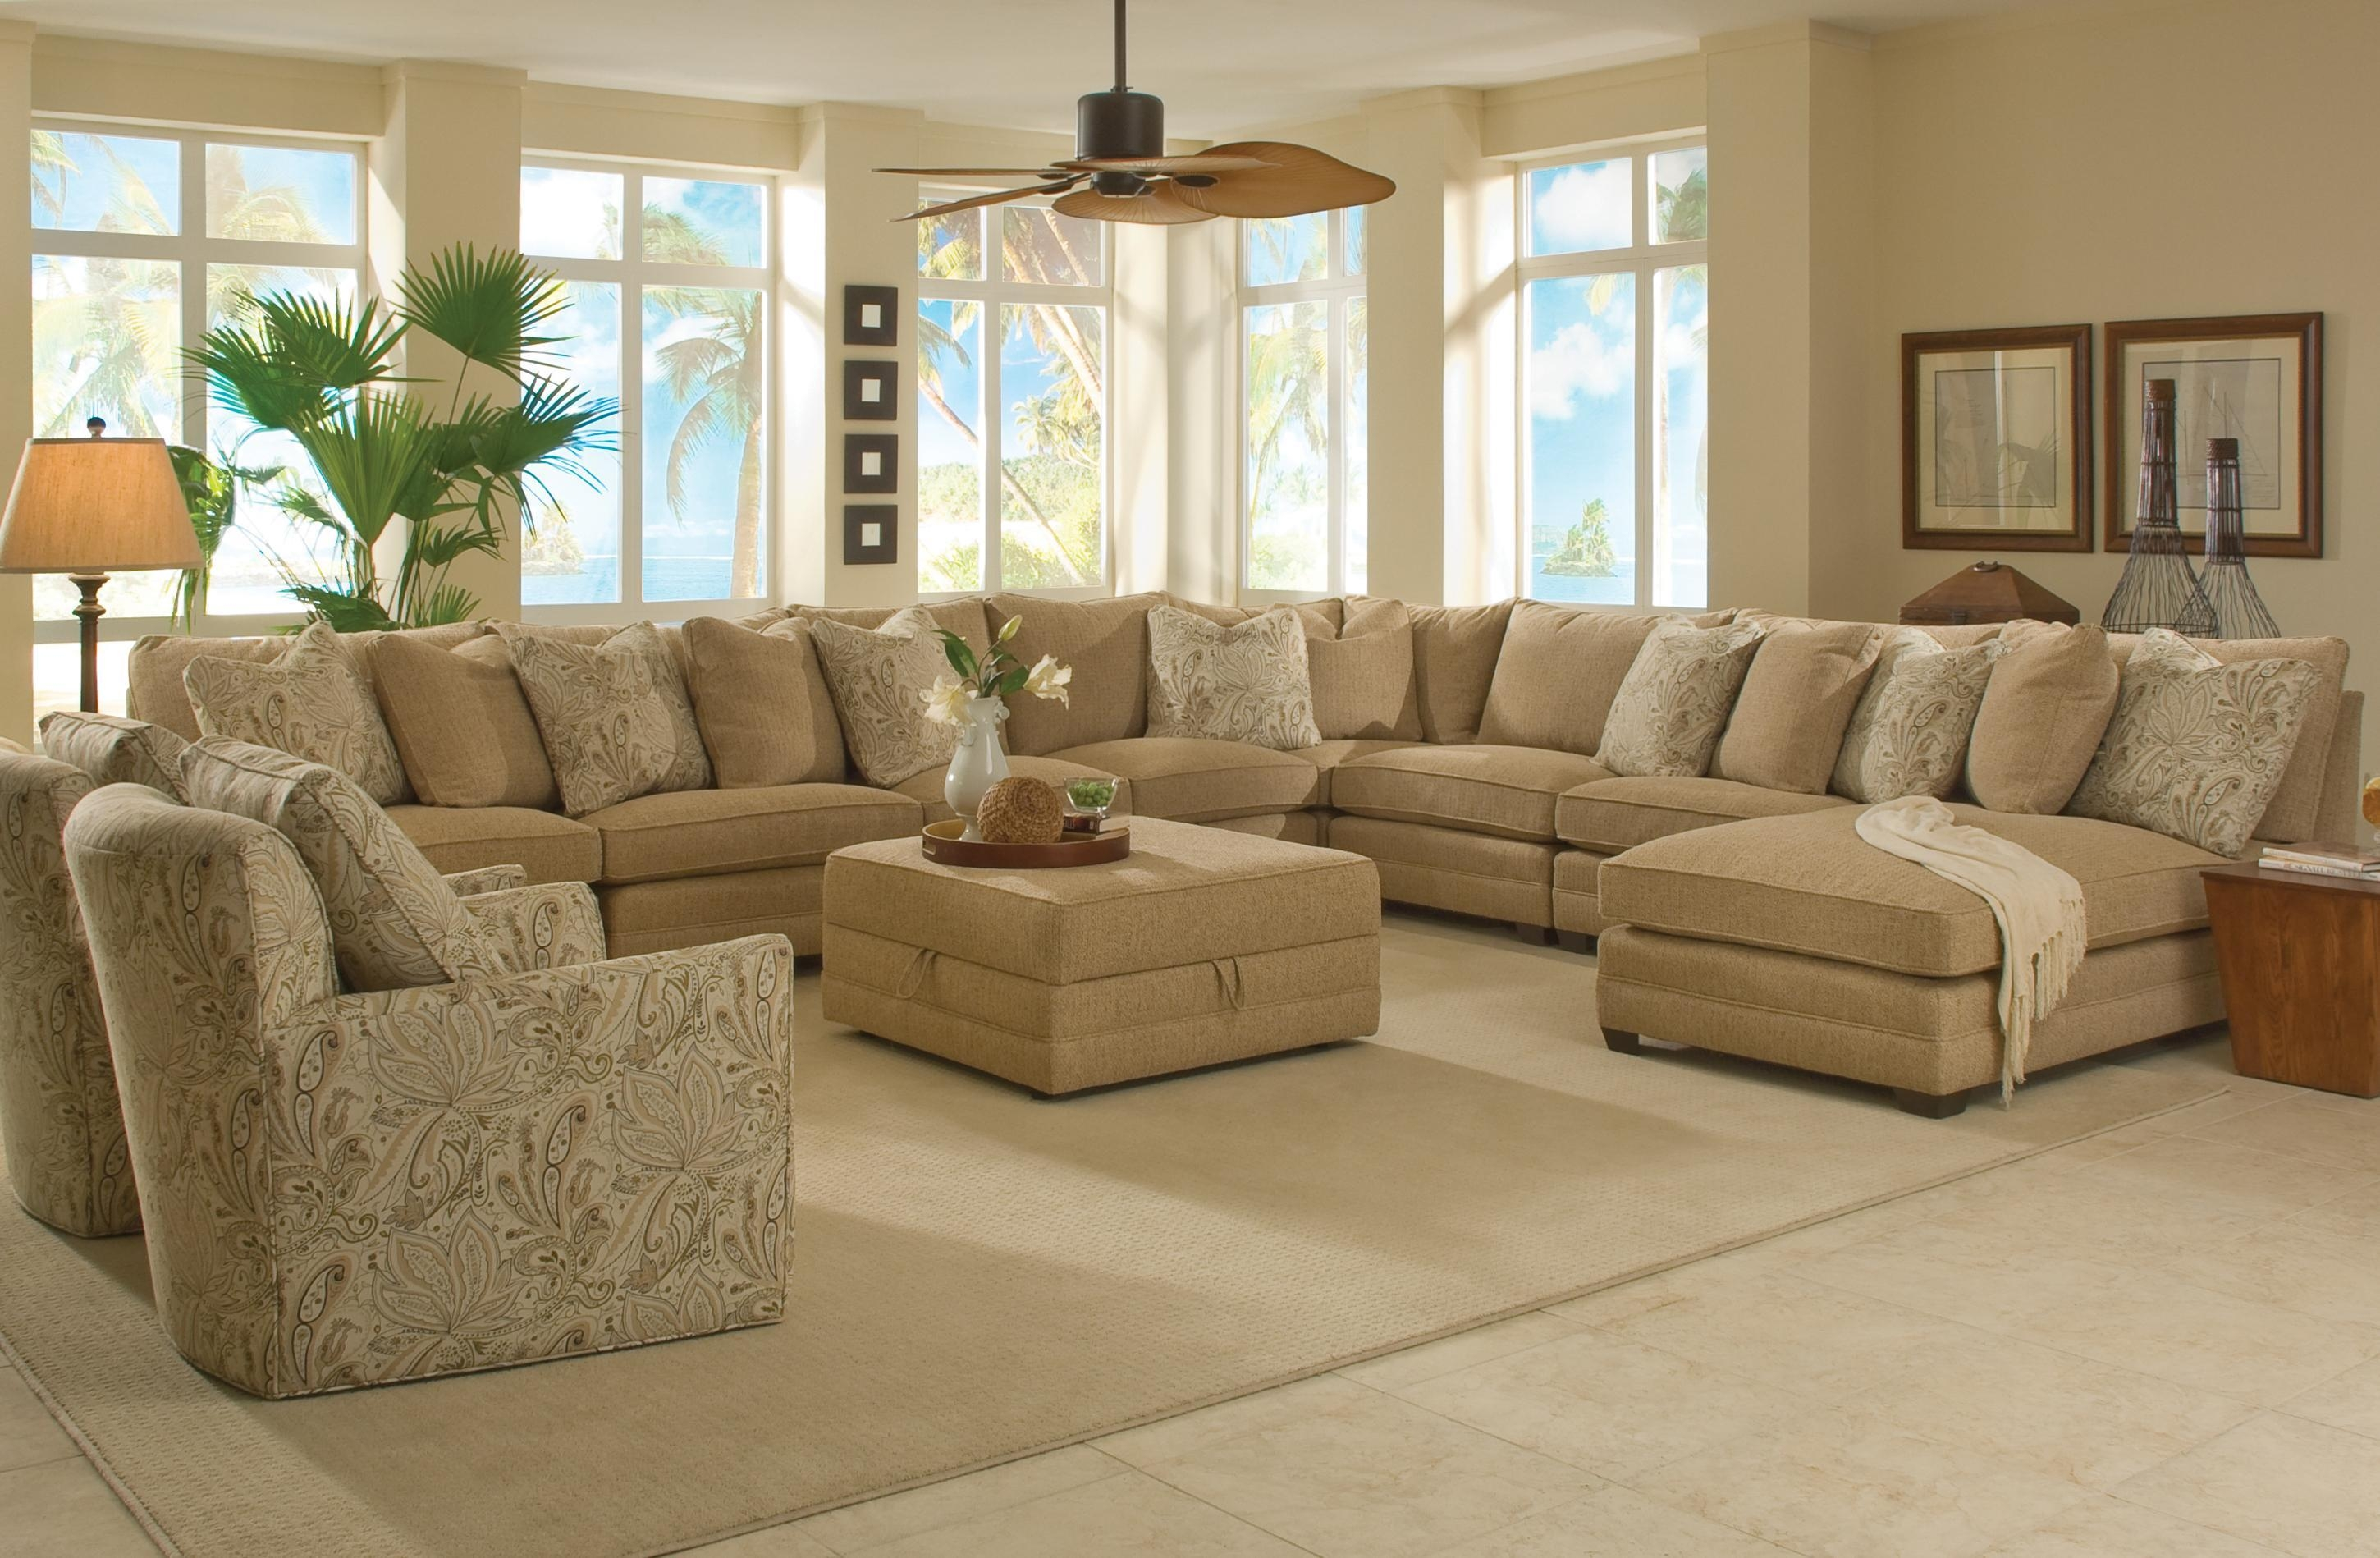 Sam Moore Margo Wide Sectional Sofa | Moore's Home Furnishings Intended For Sam Moore Sofas (Image 9 of 20)